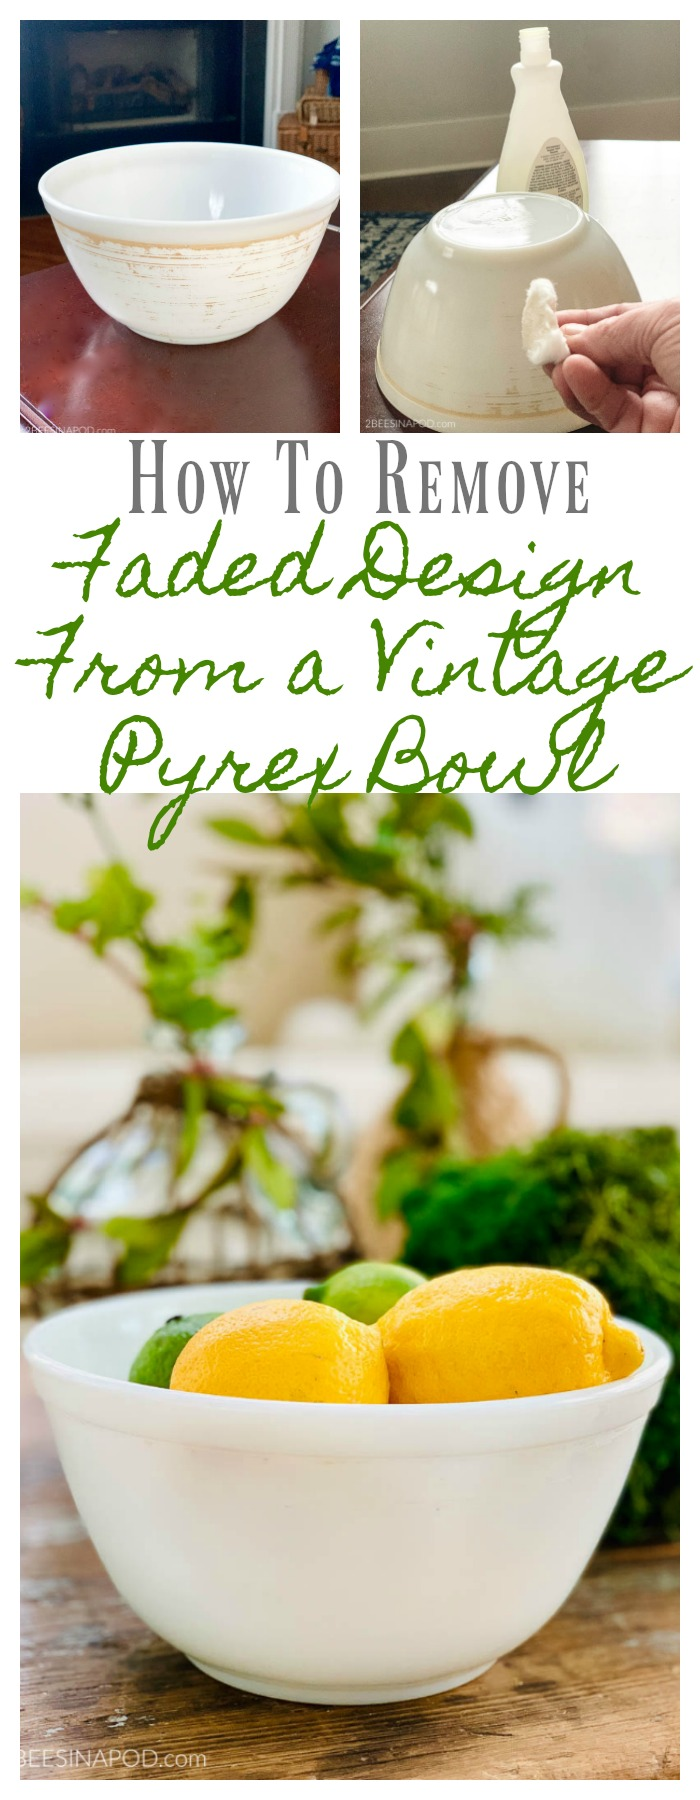 How to Remove Faded Design From a Vintage Pyrex Bowl